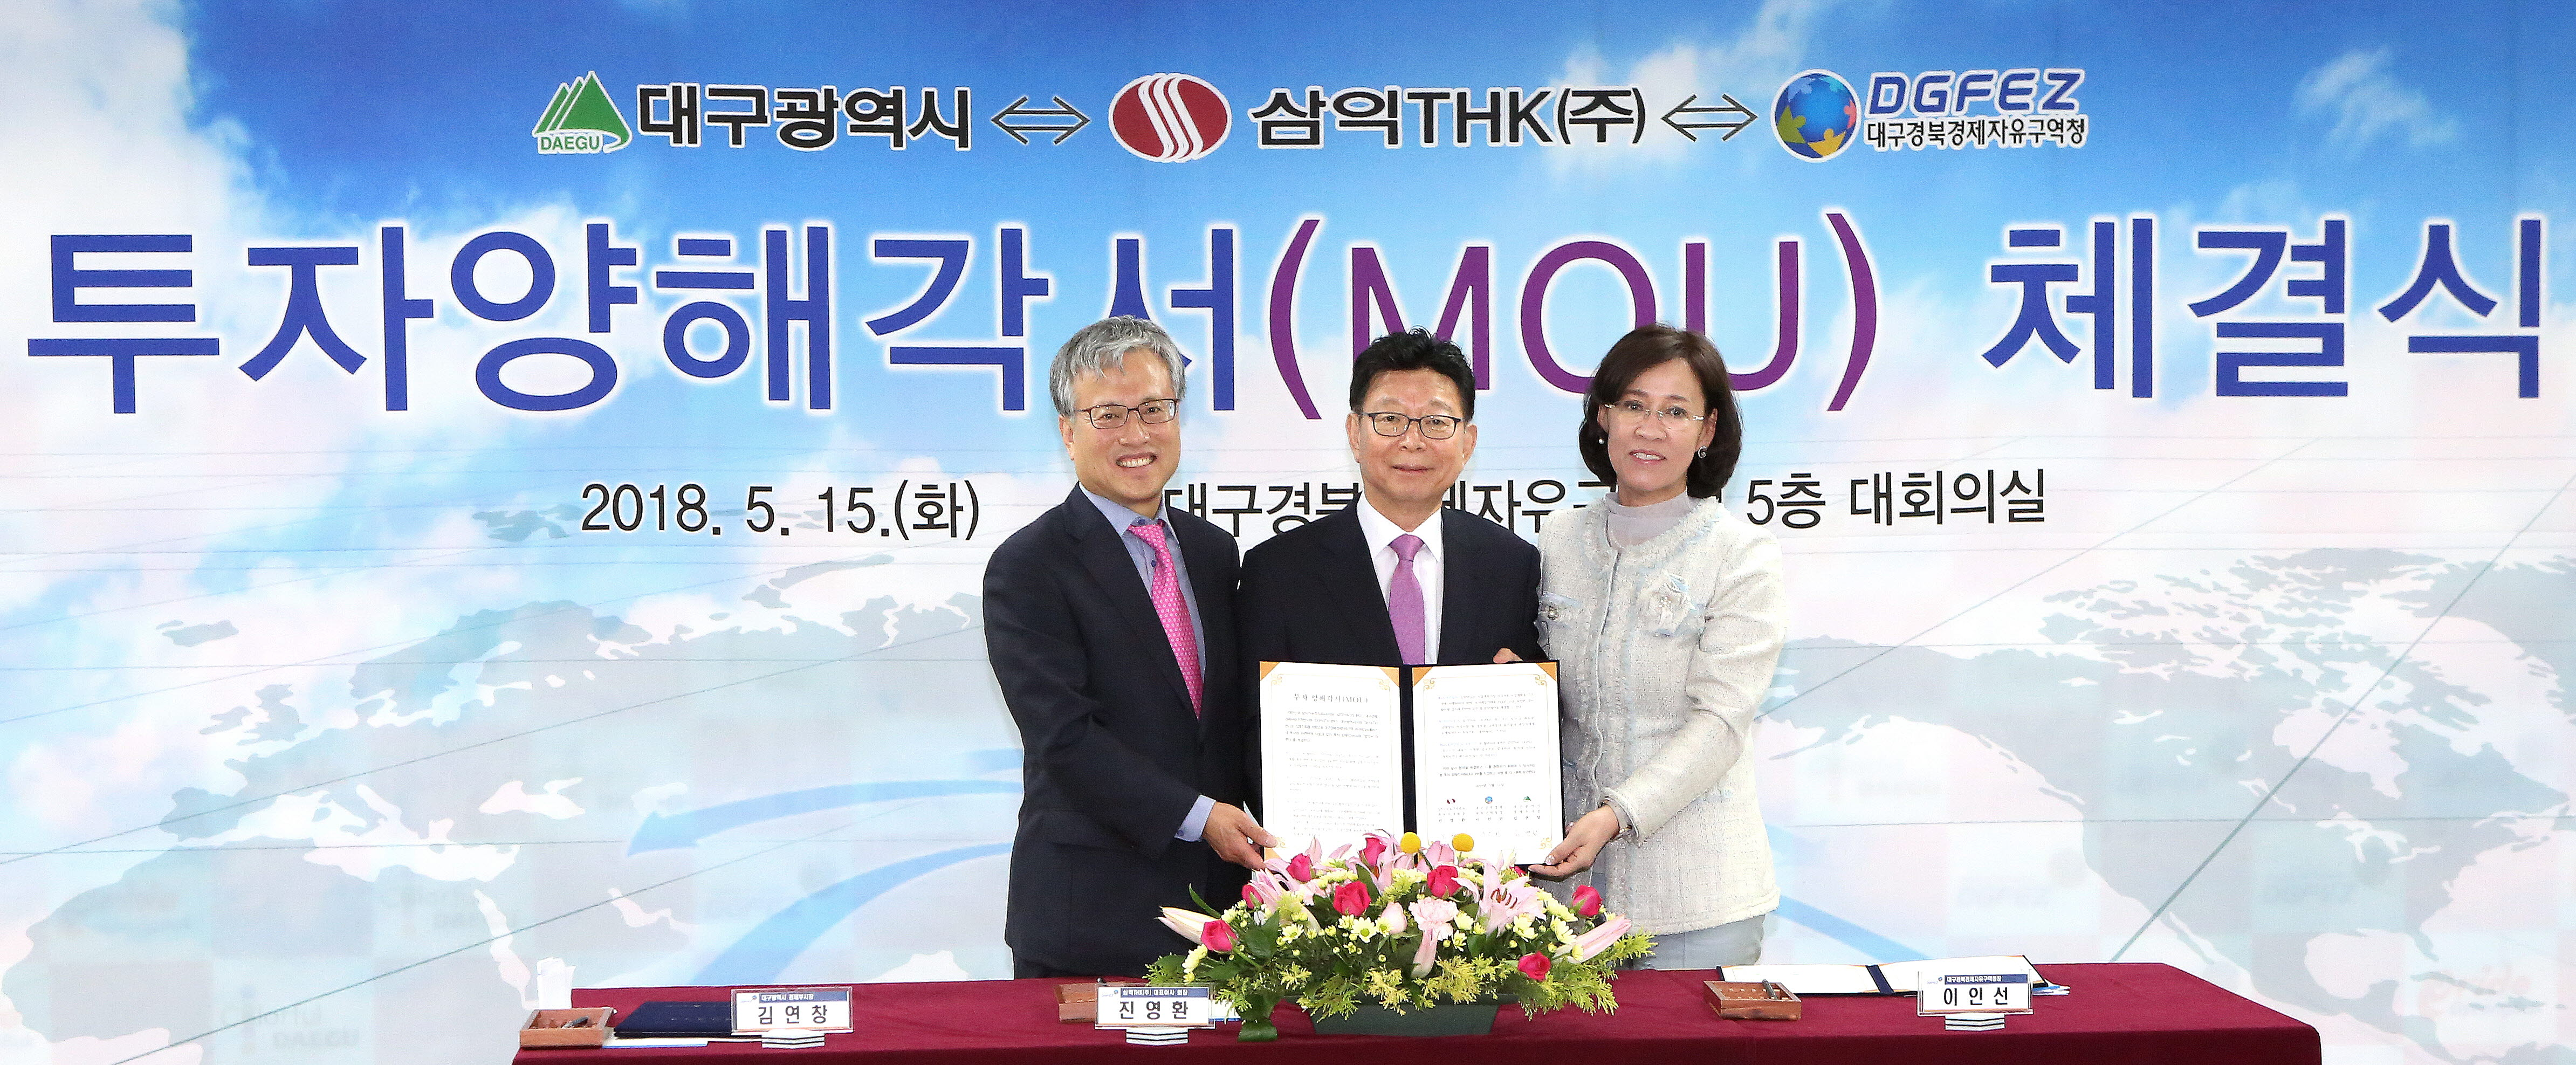 DGFEZ attracts a KRW100 billion investment from Samick-THK